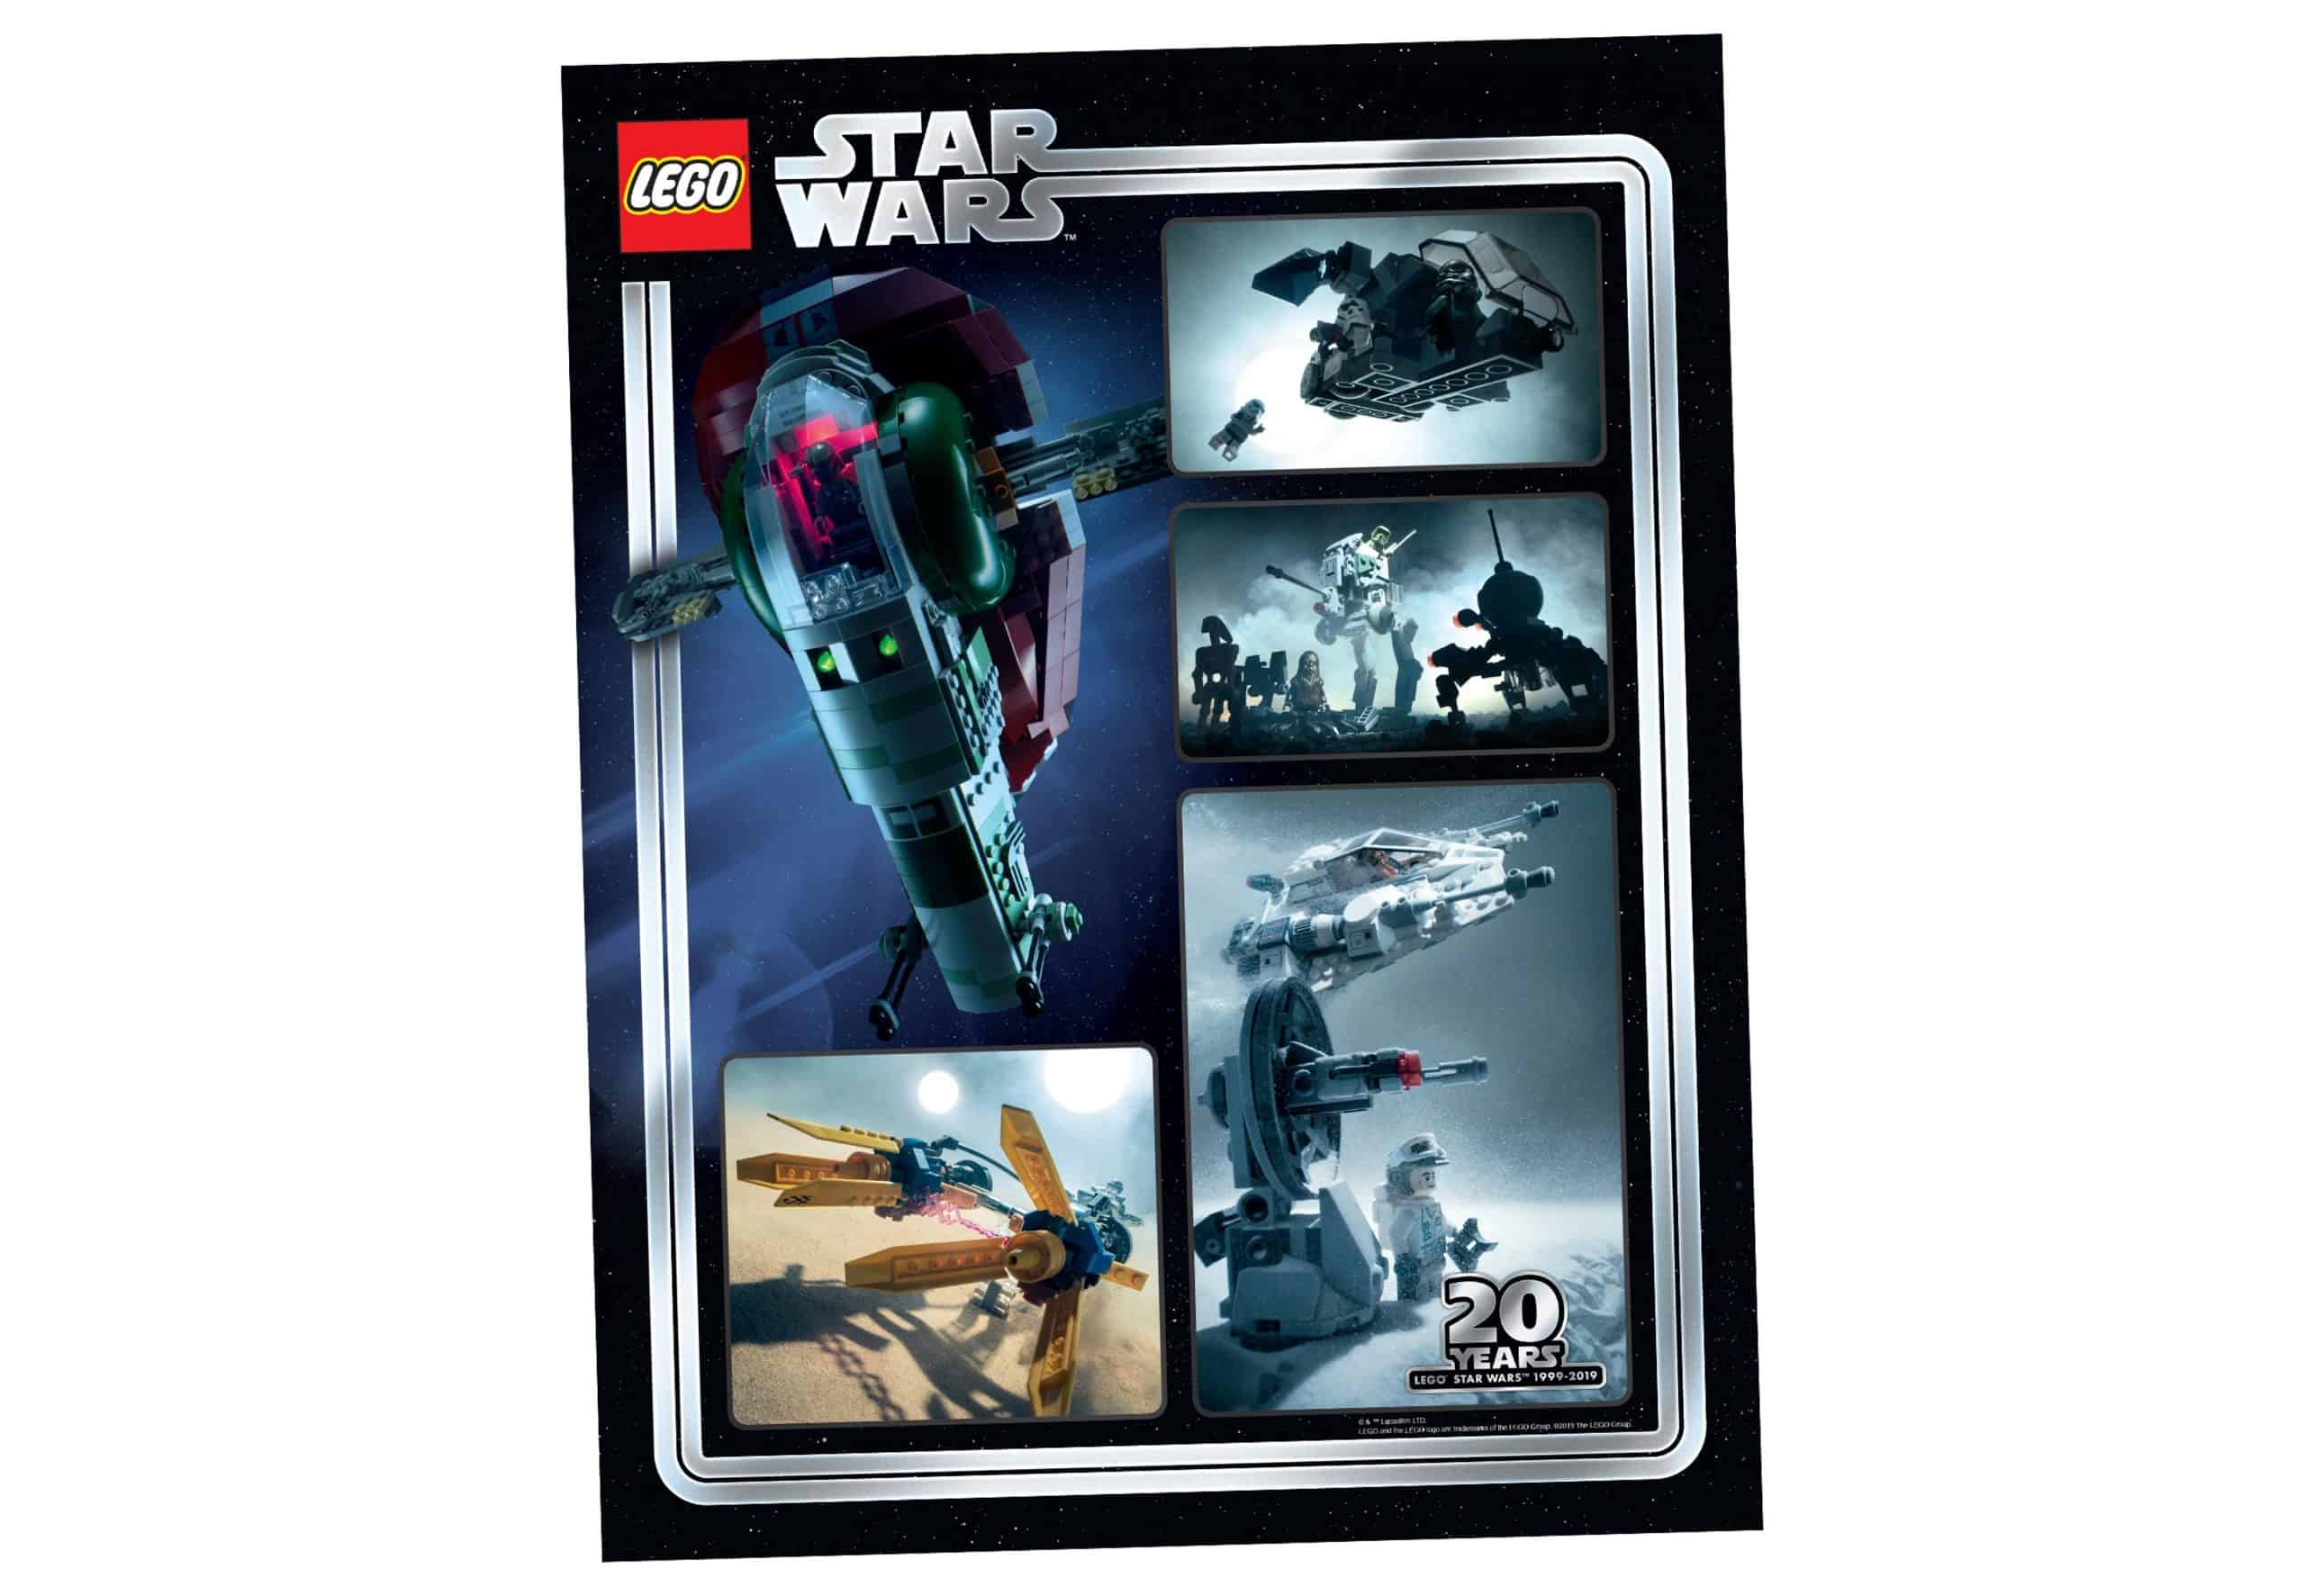 lego 5005888 tirage dart du 20eme anniversaire star wars a collectionner scaled